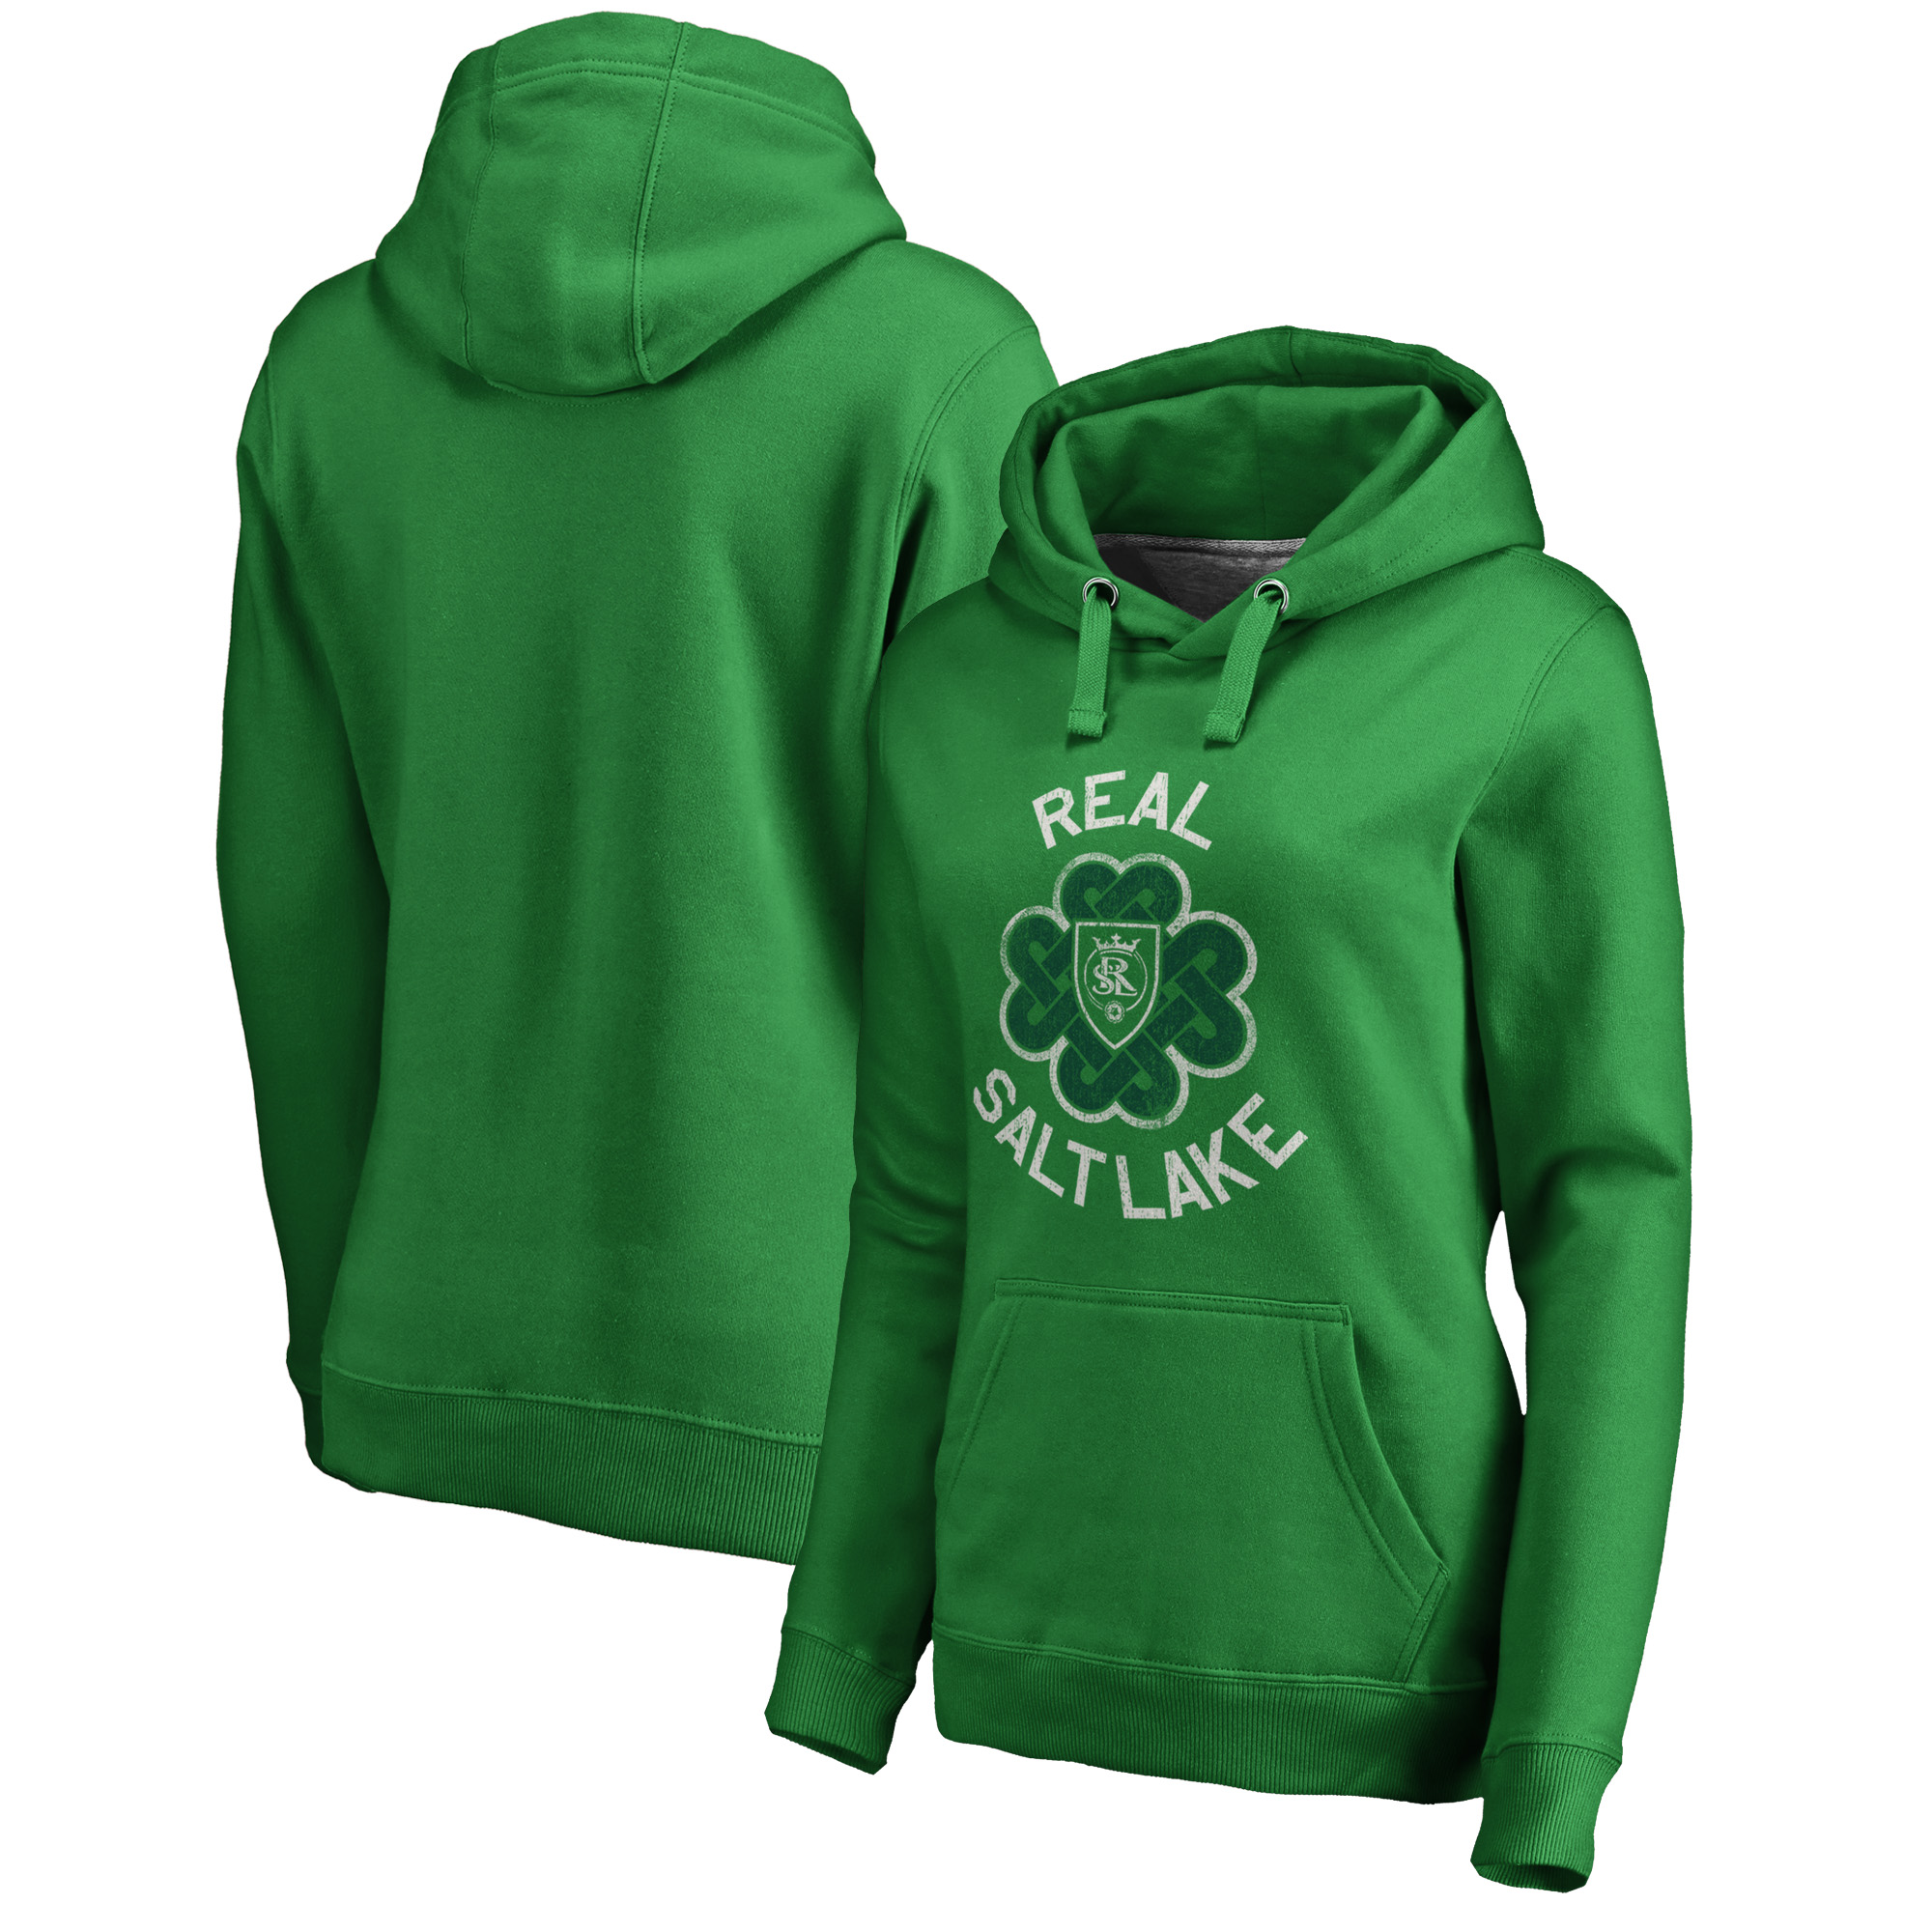 Real Salt Lake Fanatics Branded Women's St. Patrick's Day Luck Tradition Pullover Hoodie - Kelly Green